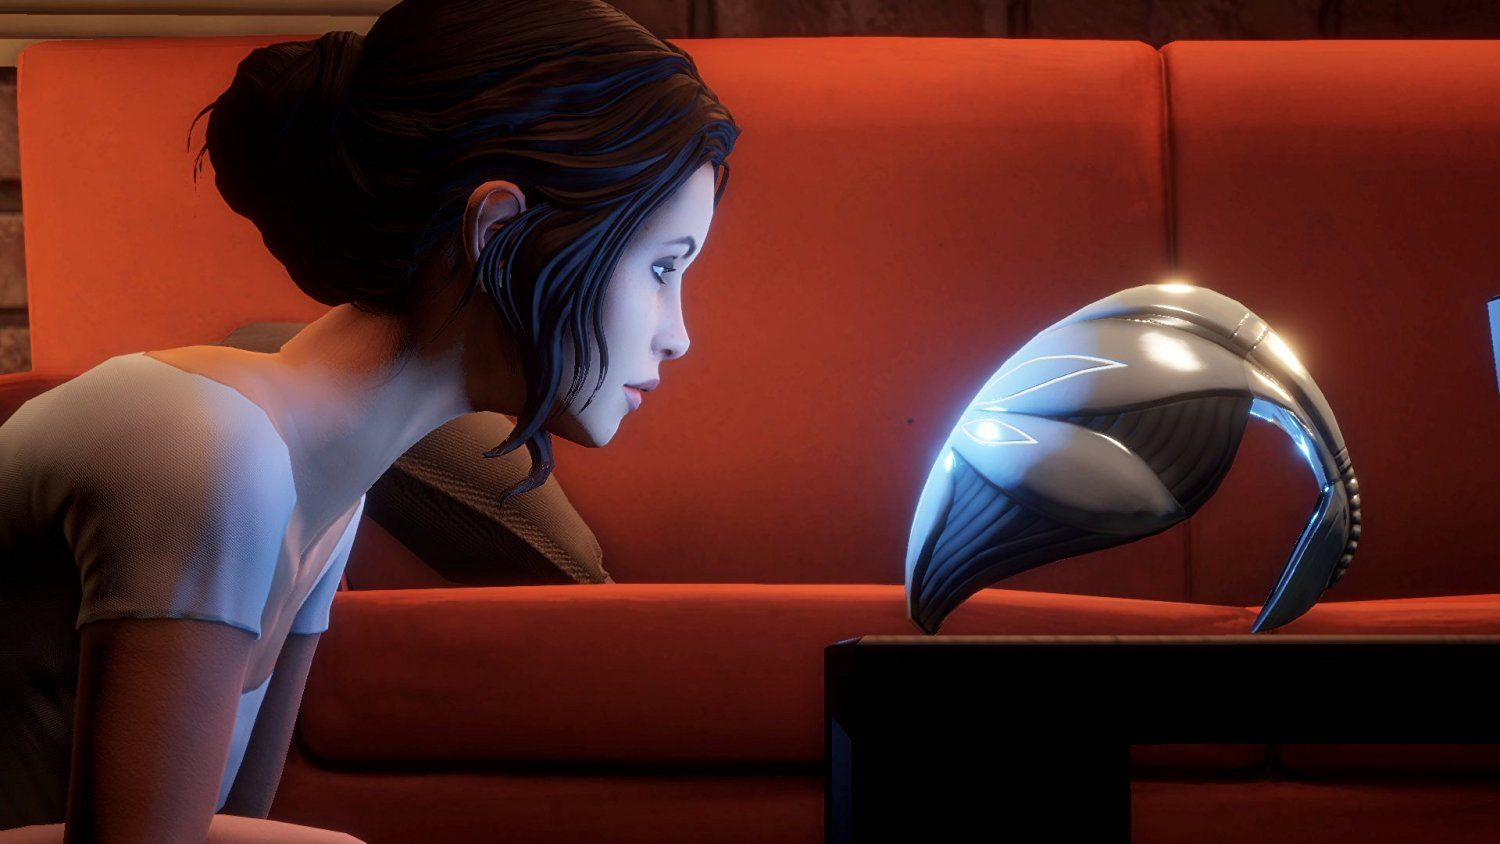 Dreamfall Chapters (PS4) - 8